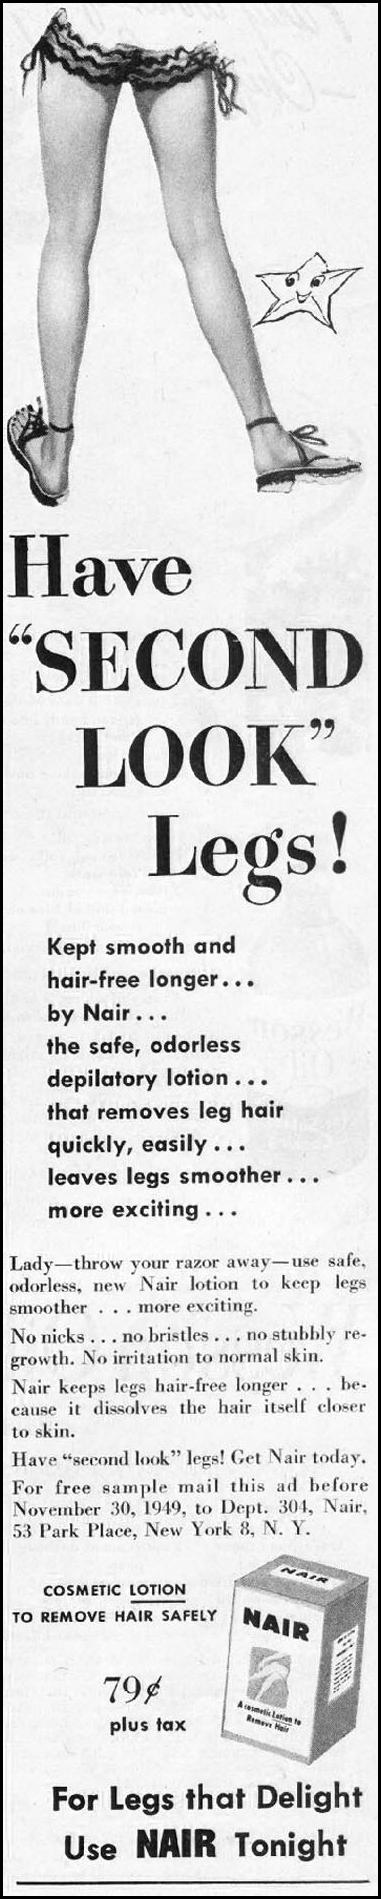 NAIR HAIR REMOVER LADIES' HOME JOURNAL 07/01/1949 p. 83